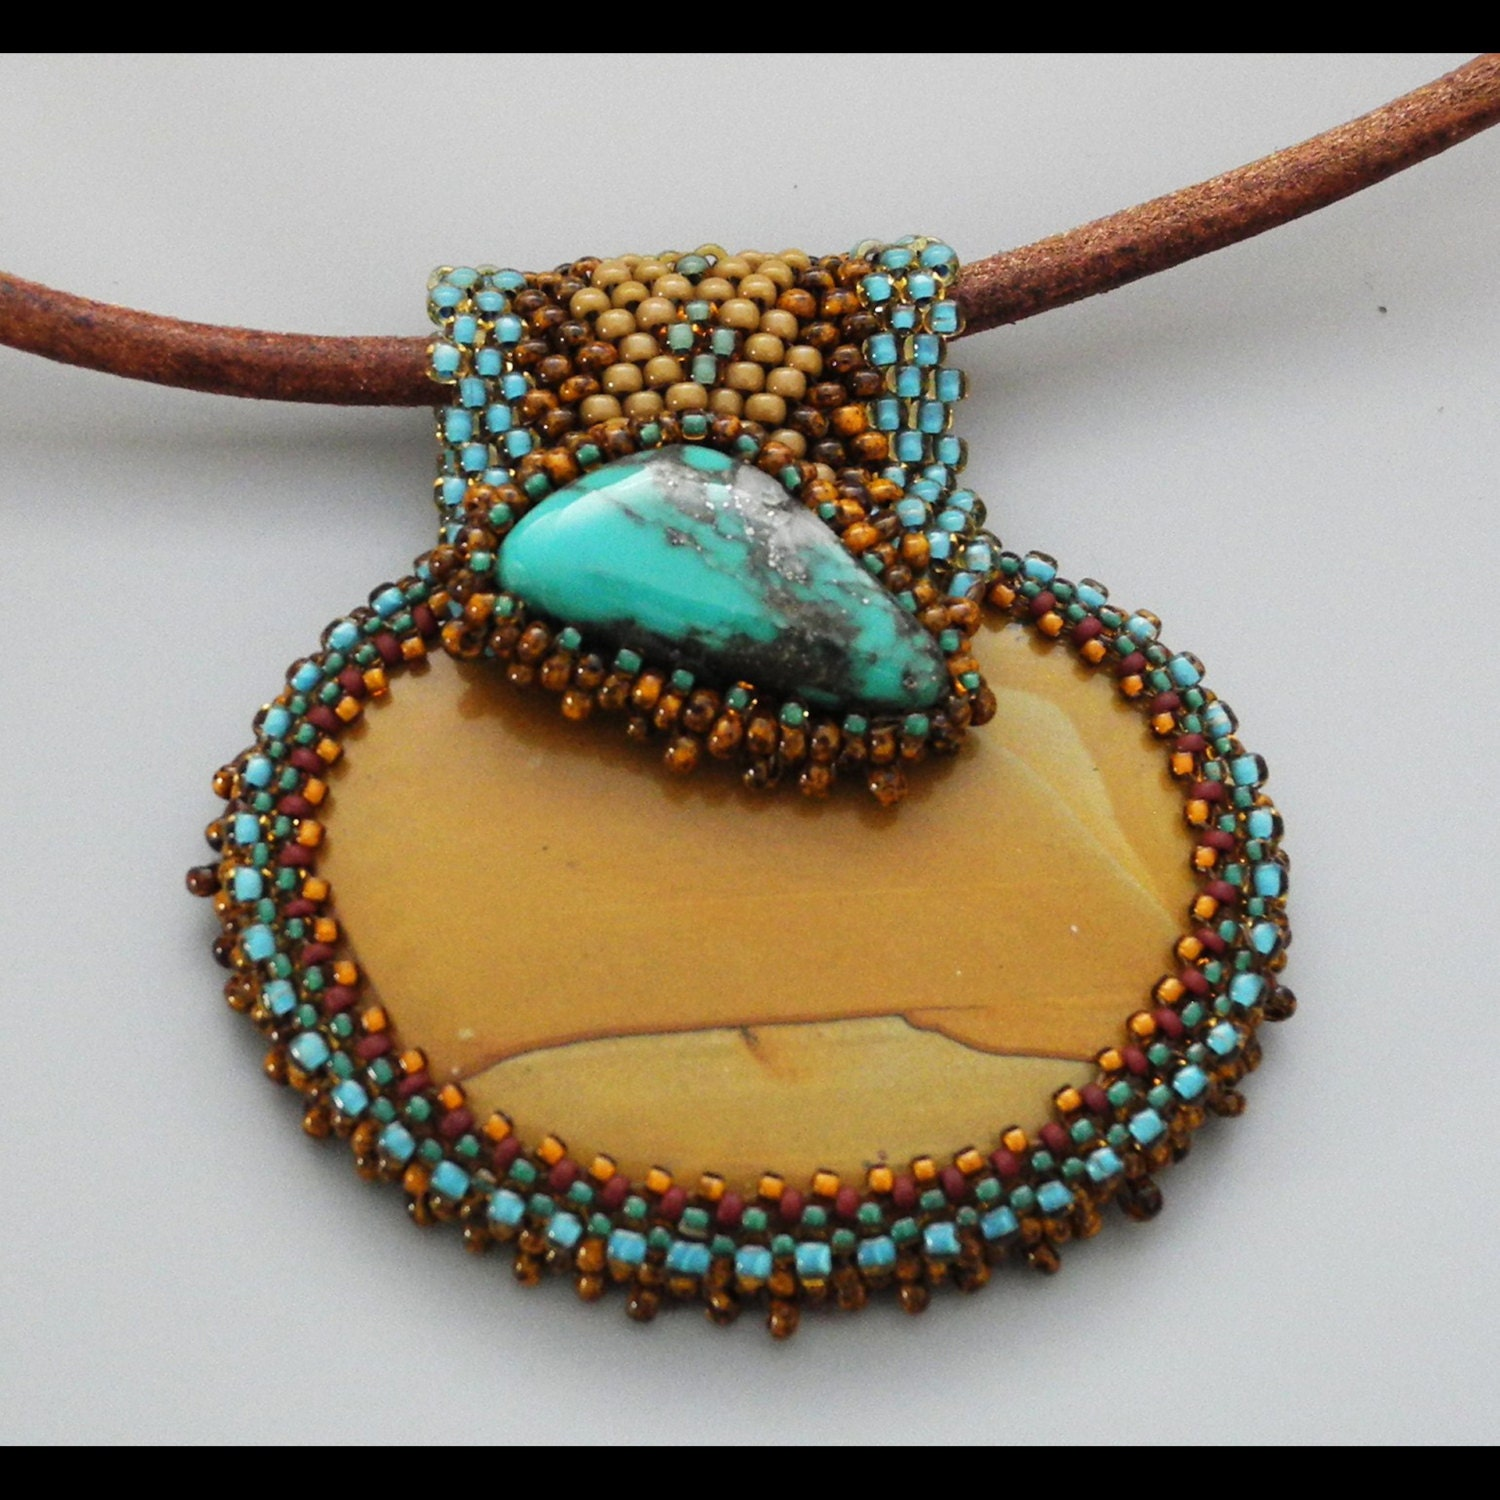 Beads Necklace Beads: Beaded Cabochon Necklace Gratitude Bead Weaving By CheriCMeyer